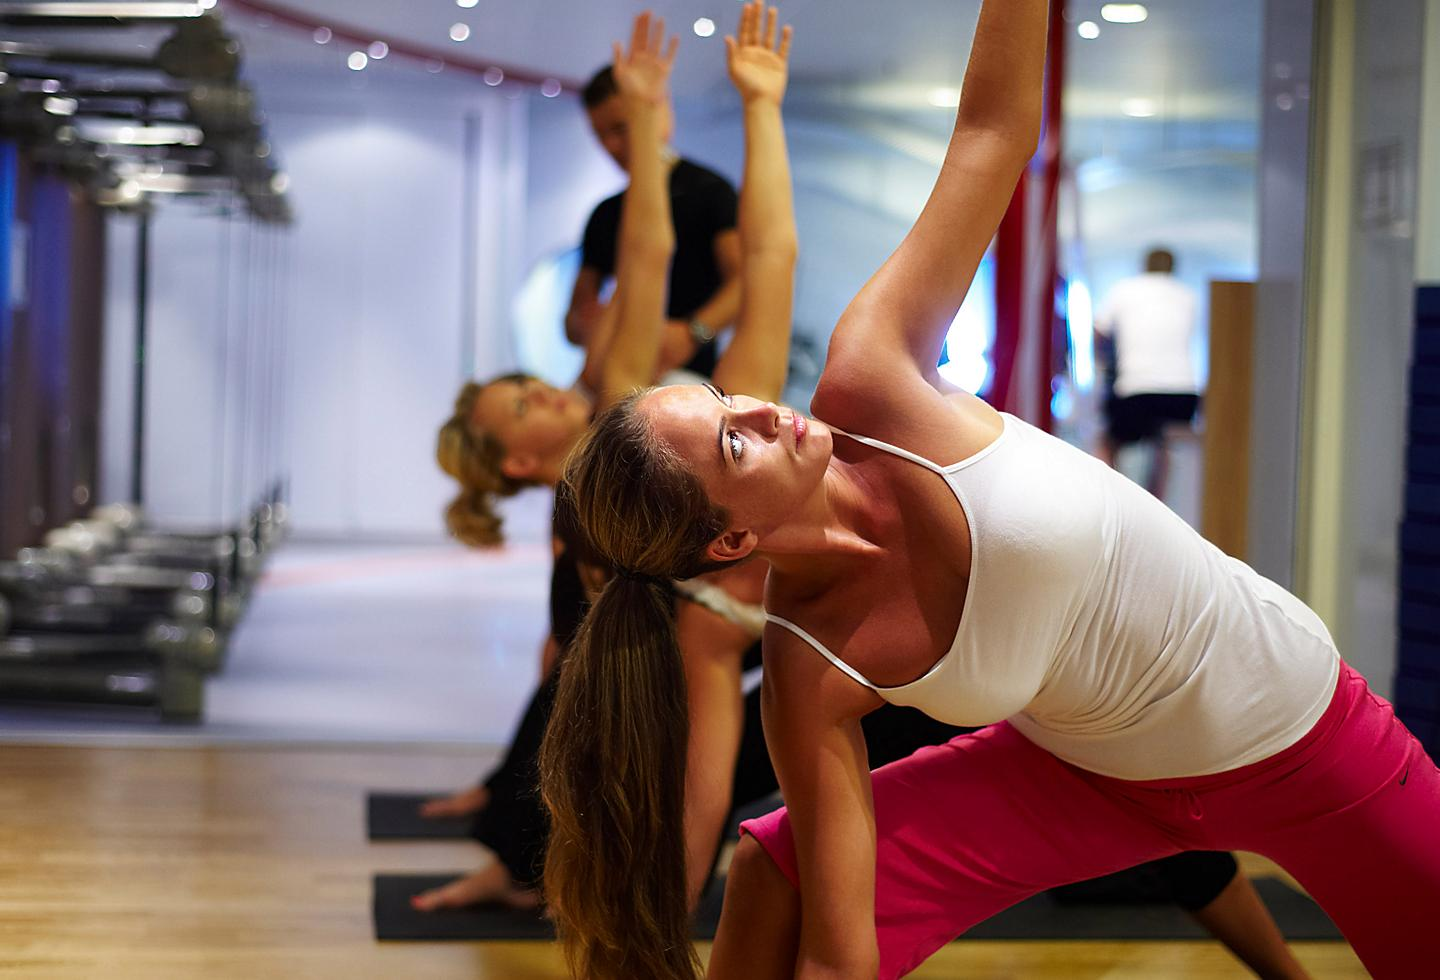 Guest Enjoying Yoga Class with Instructor